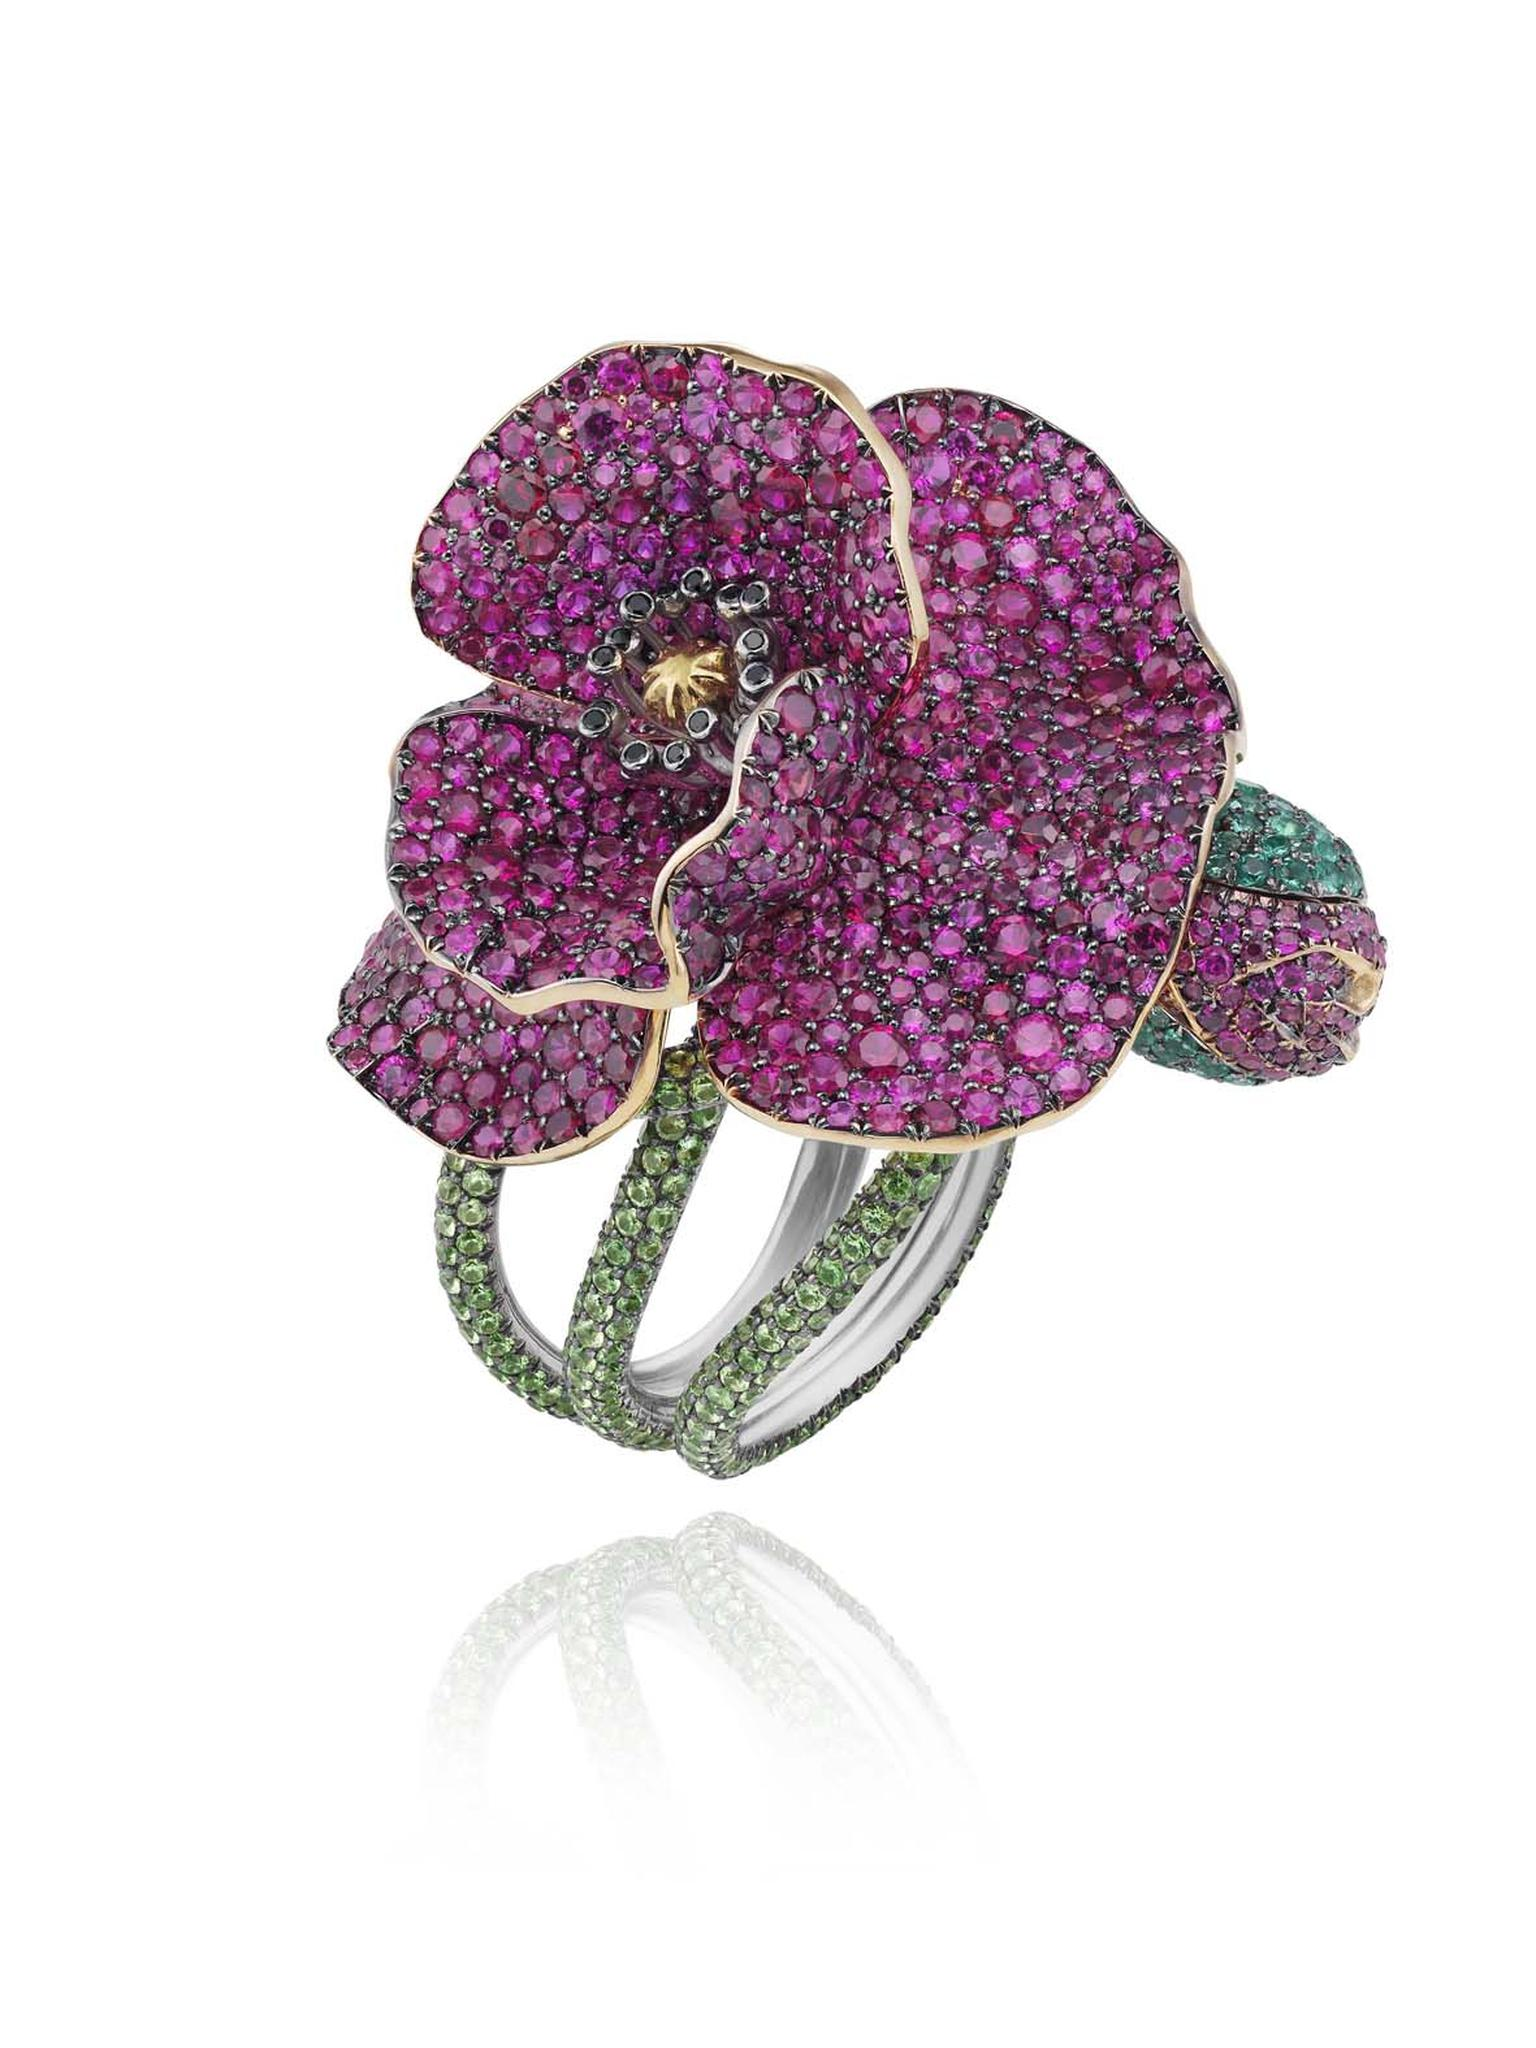 829236-9001 Poppy Ring  from the Red Carpet Collection 2013 whiteChopardChopard.jpg